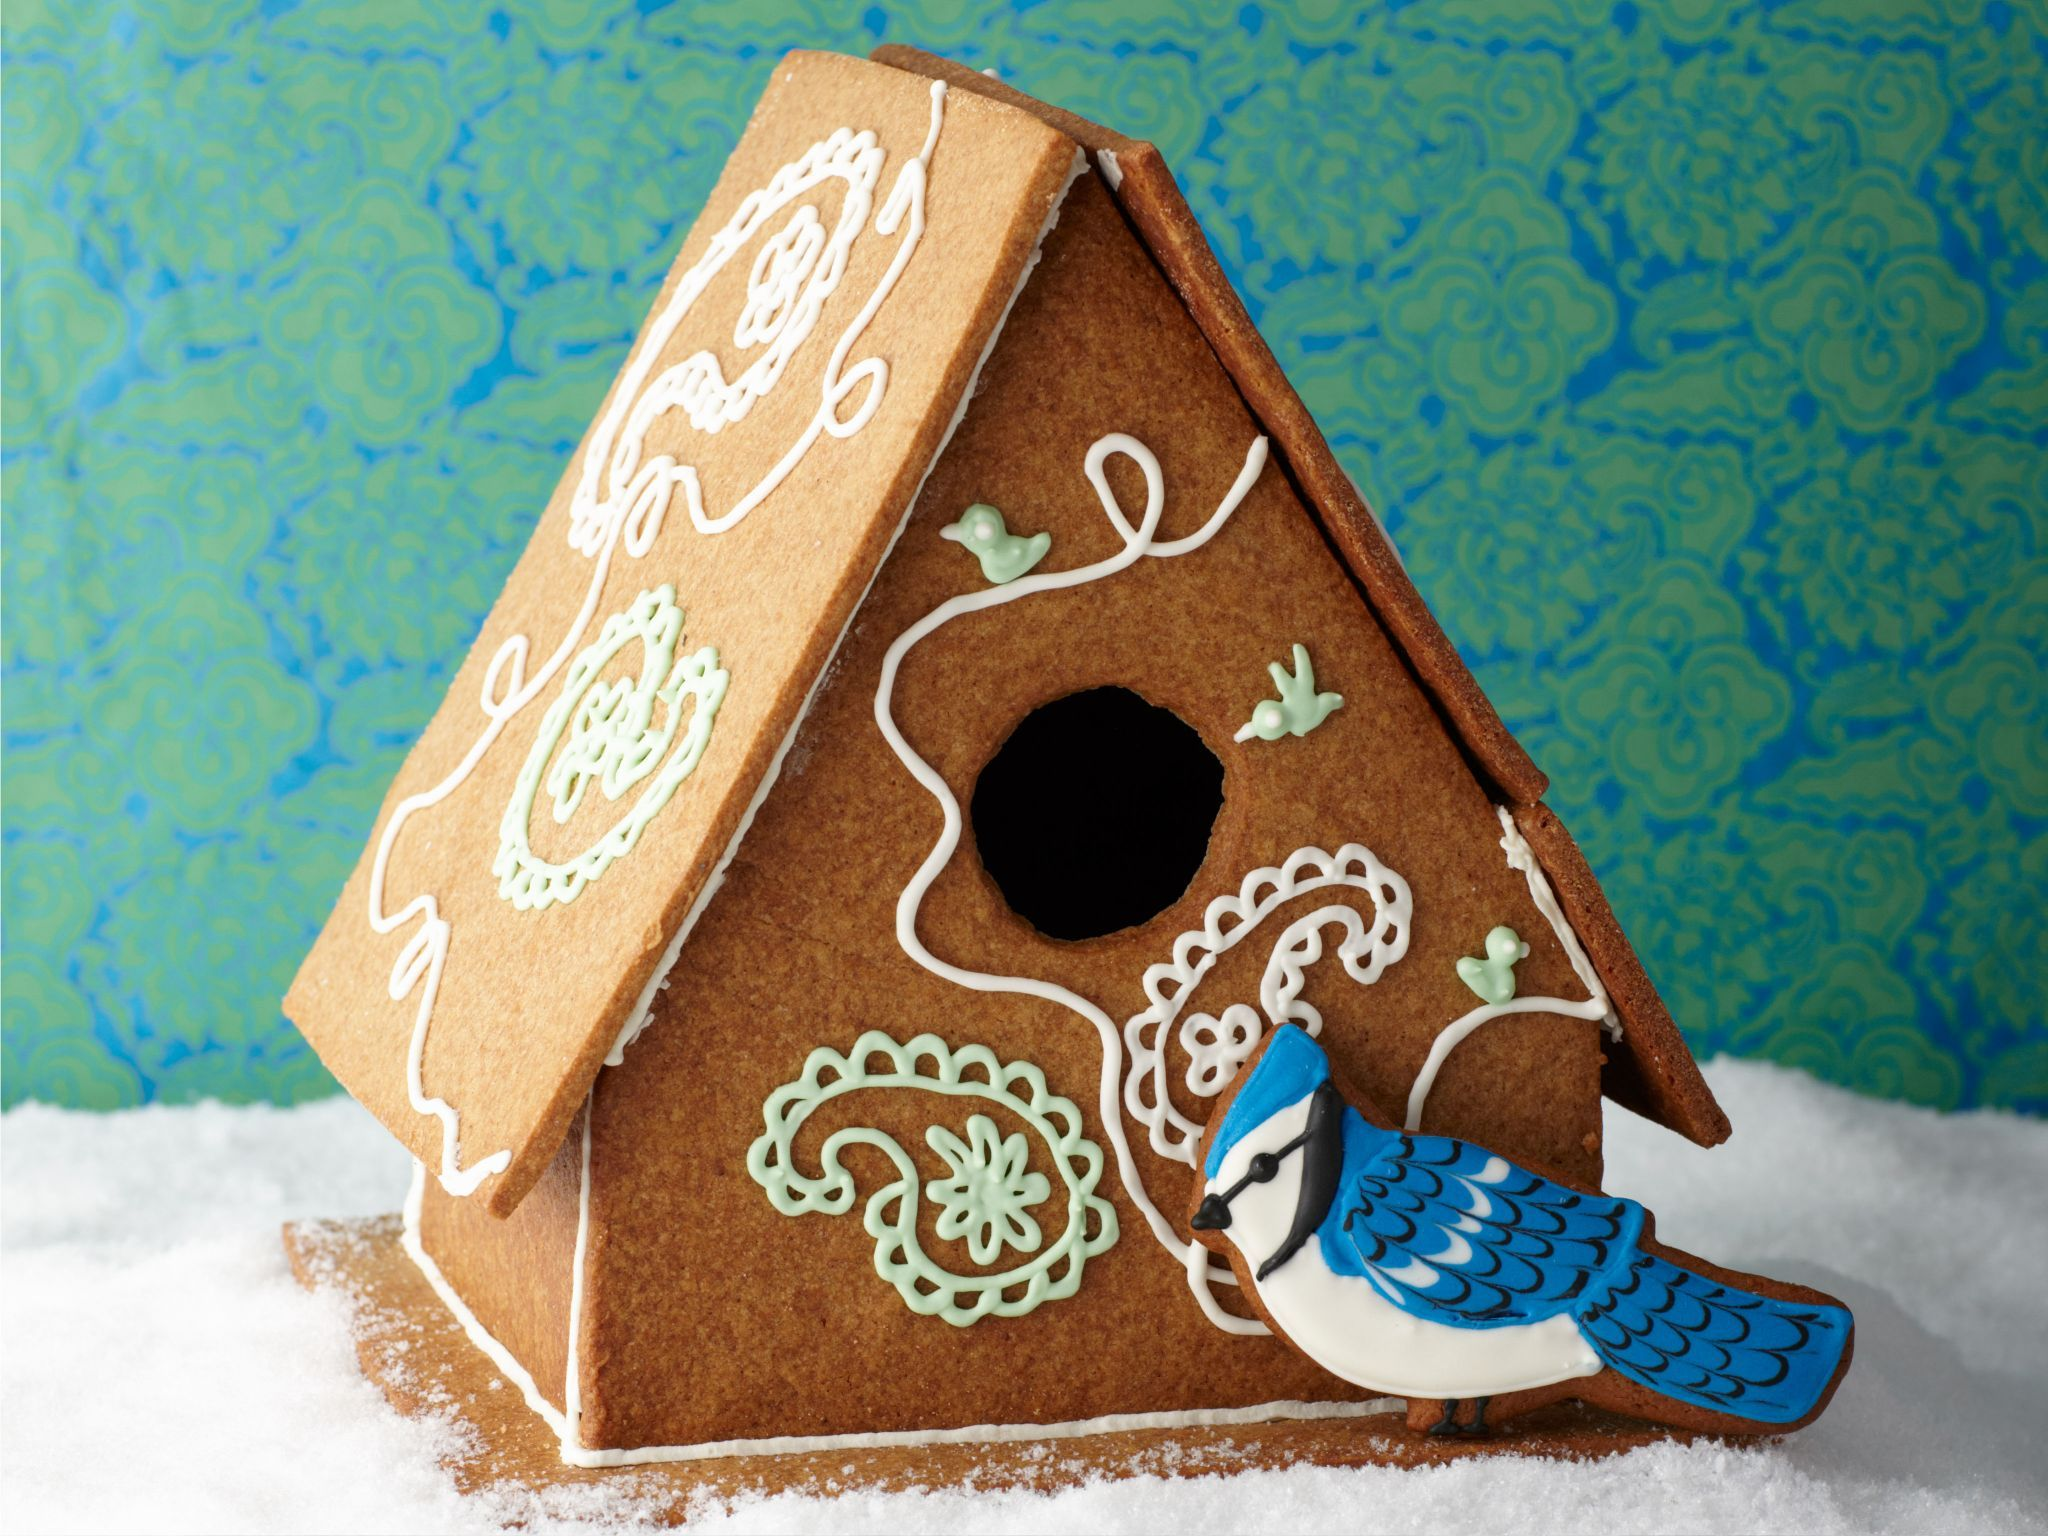 Gingerbread Birdhouse recipe from Food Network Kitchen via Food Network